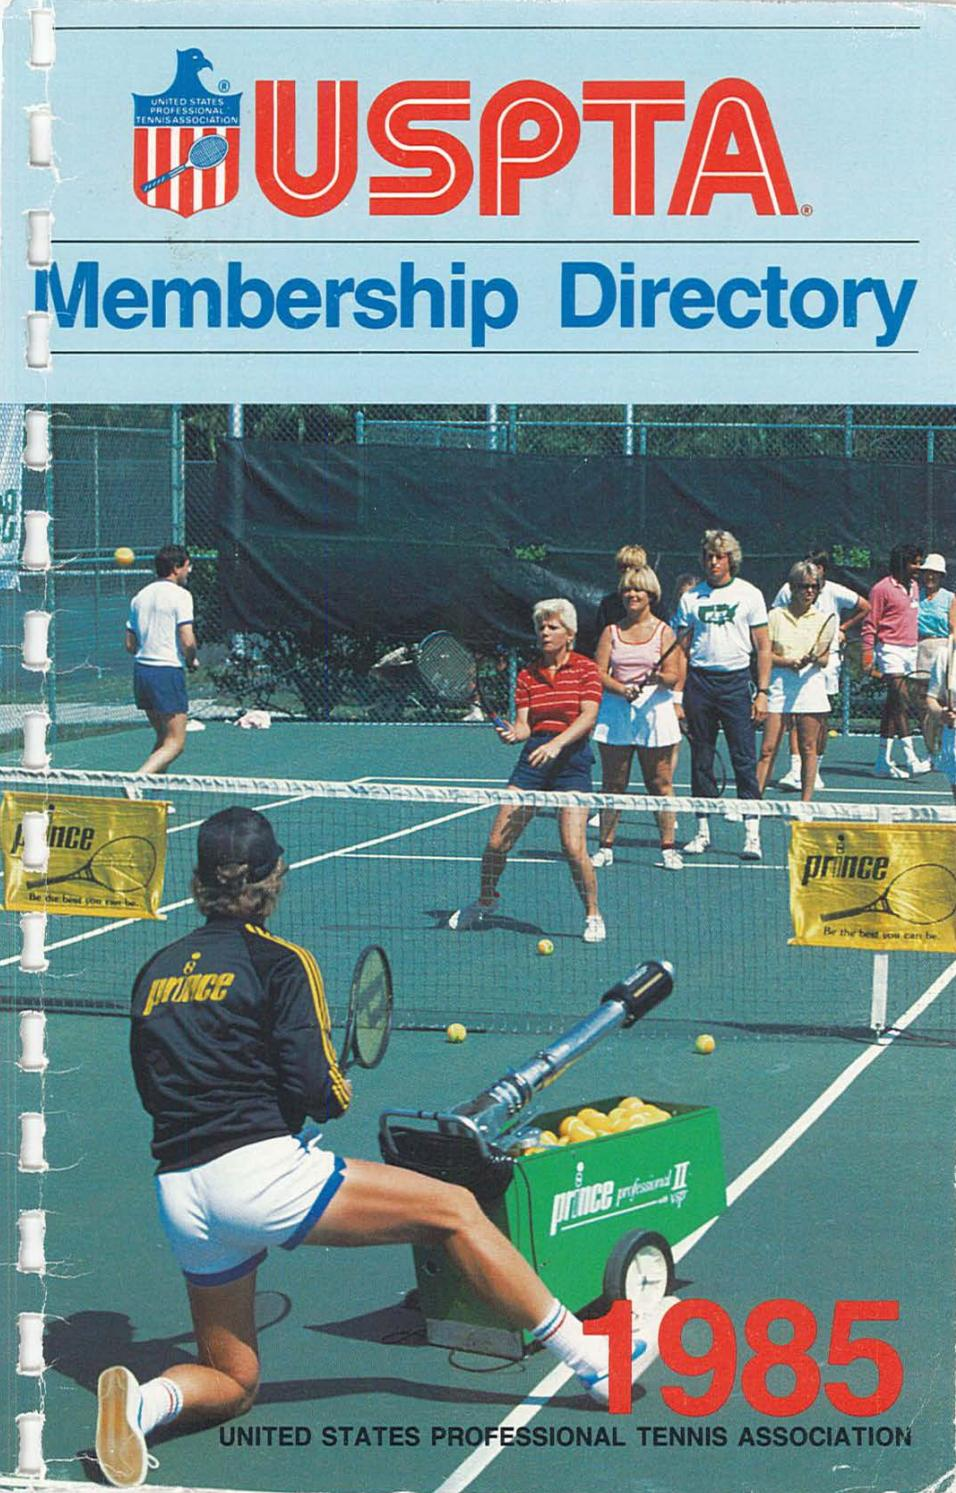 d368707acad USPTA Membership Directory 1985 by USPTA - issuu